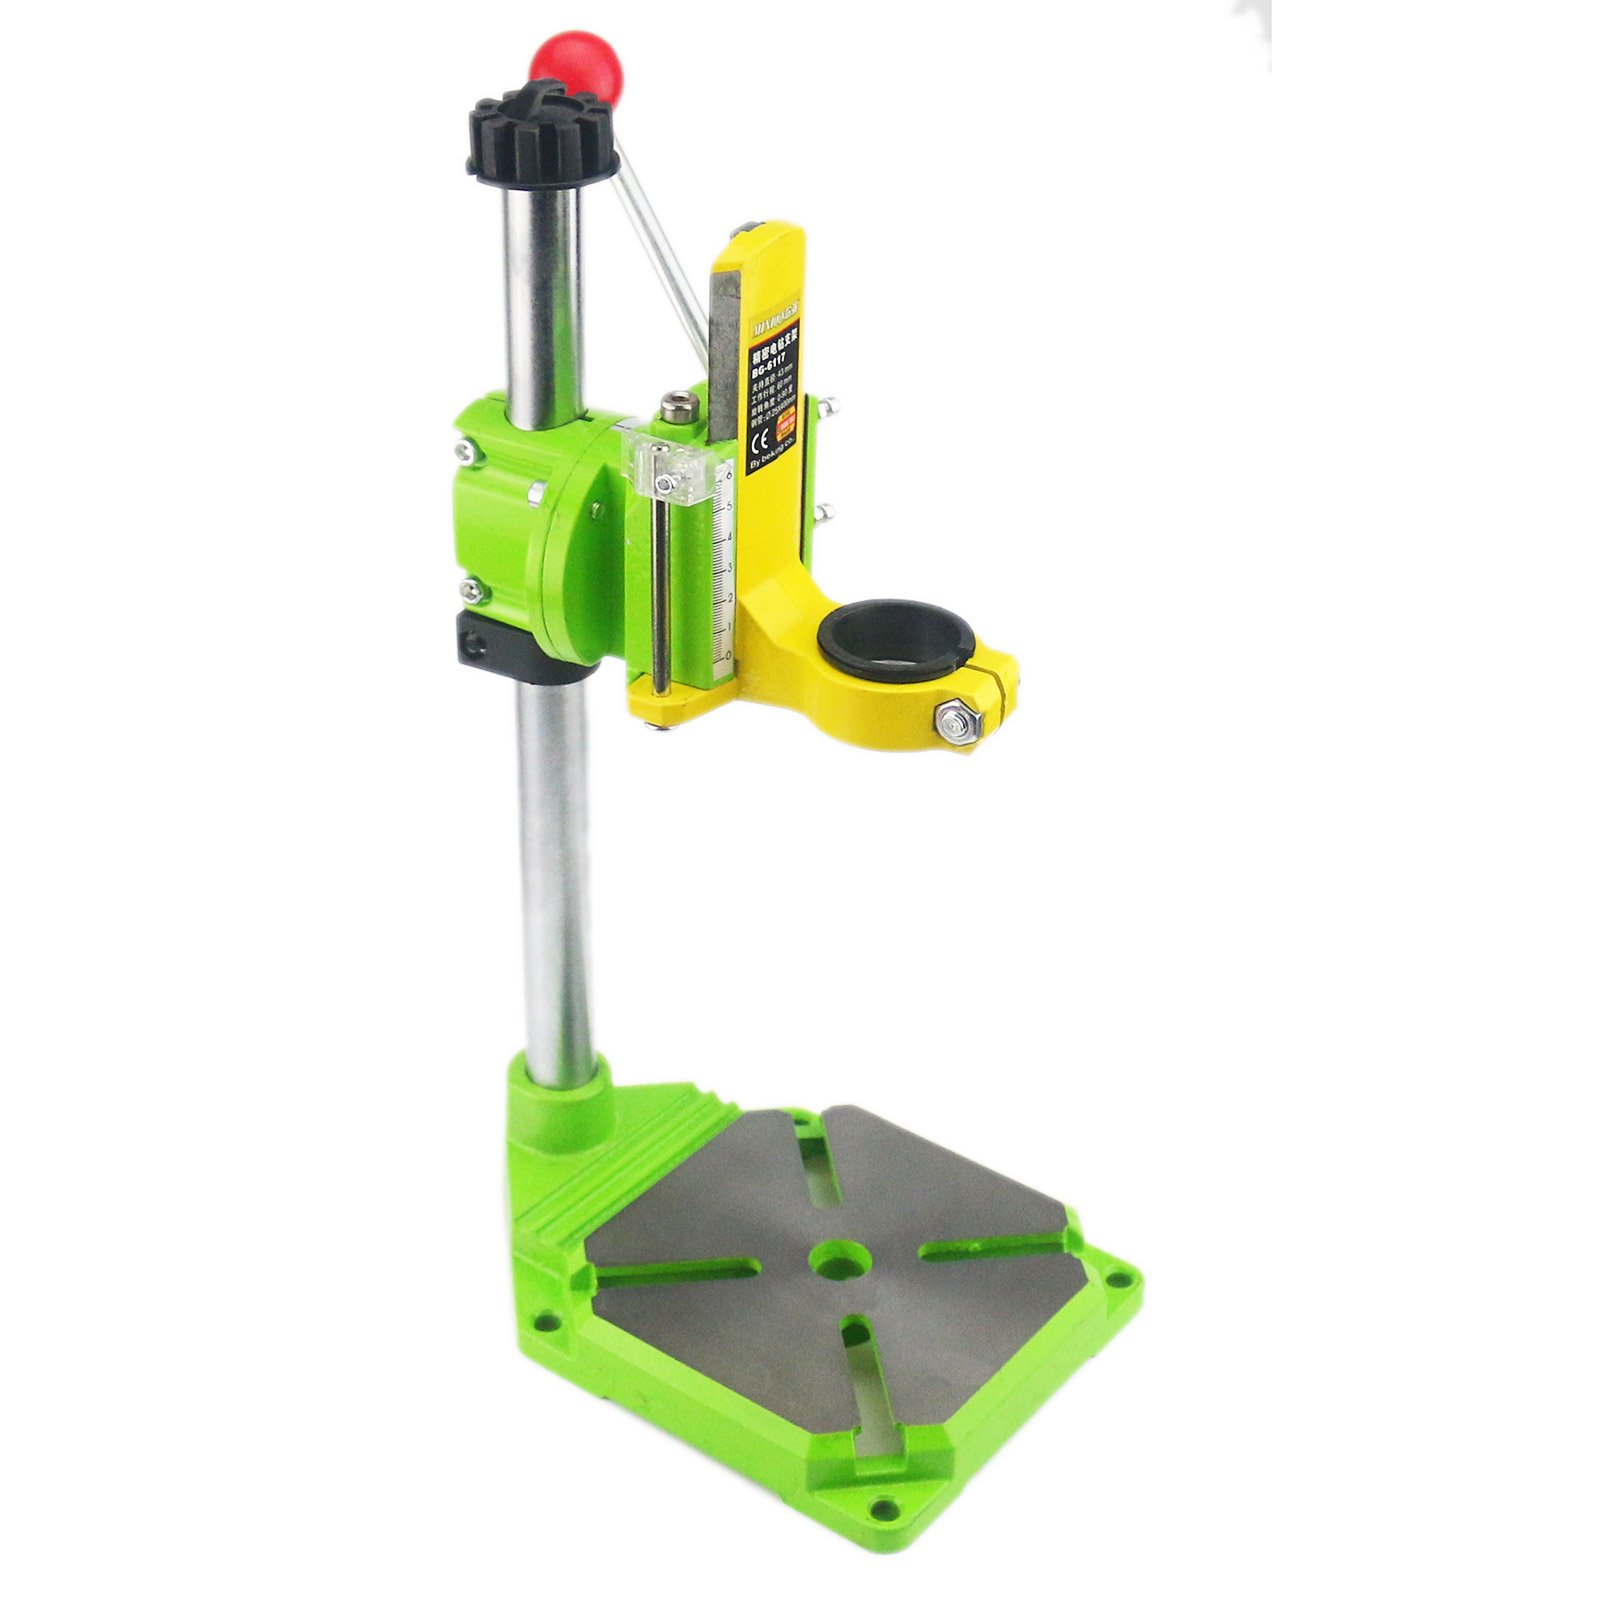 Ogrmar Drilling Collet Drill Press Table for Drill Workbench Repair Tool (BG-6117) by Ogrmar